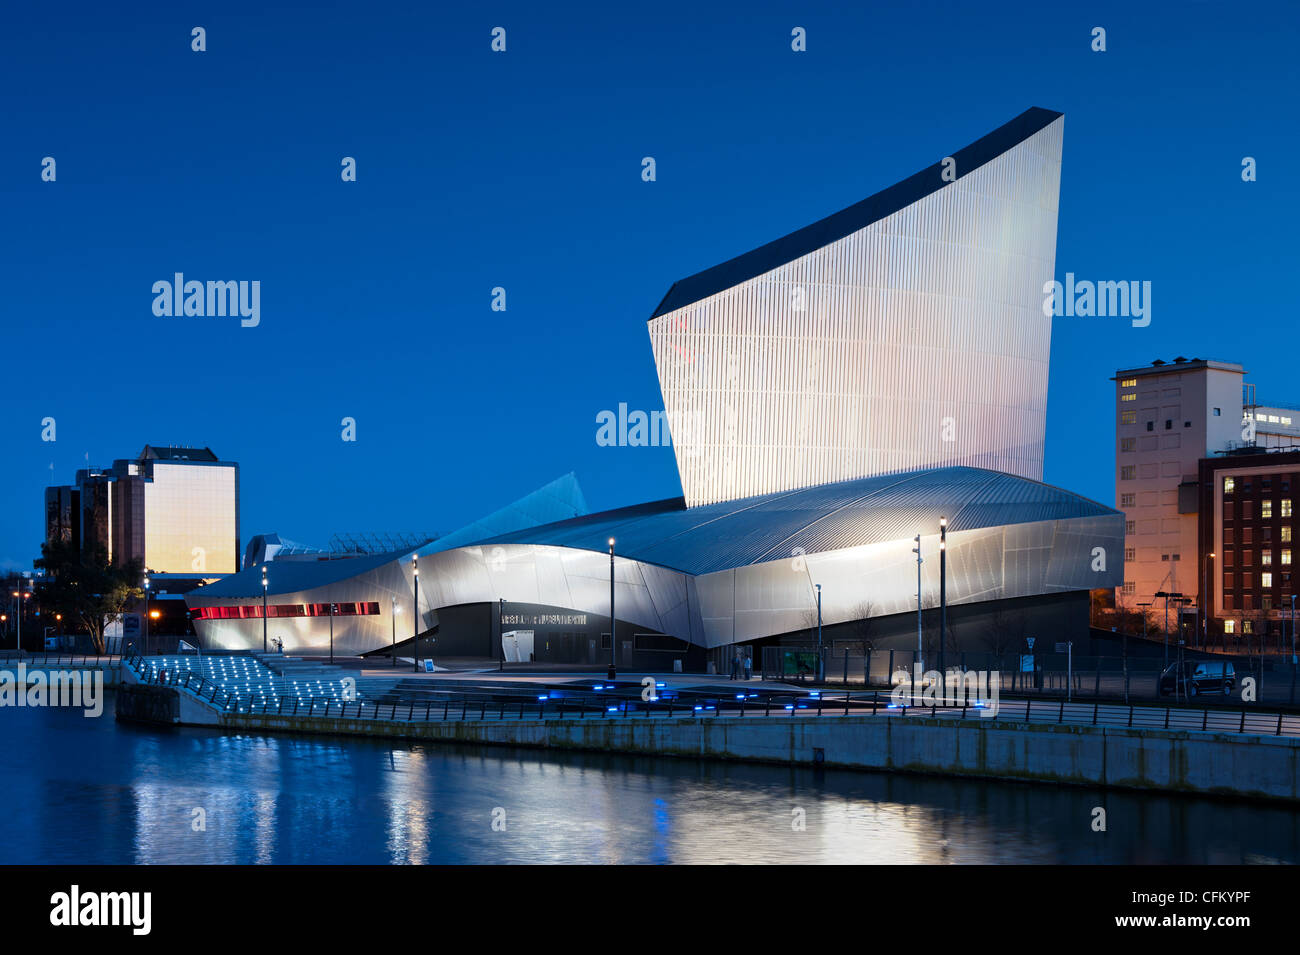 The Imperial War Museum North located near to Salford Quays / Media City near the Manchester Ship Canal. - Stock Image